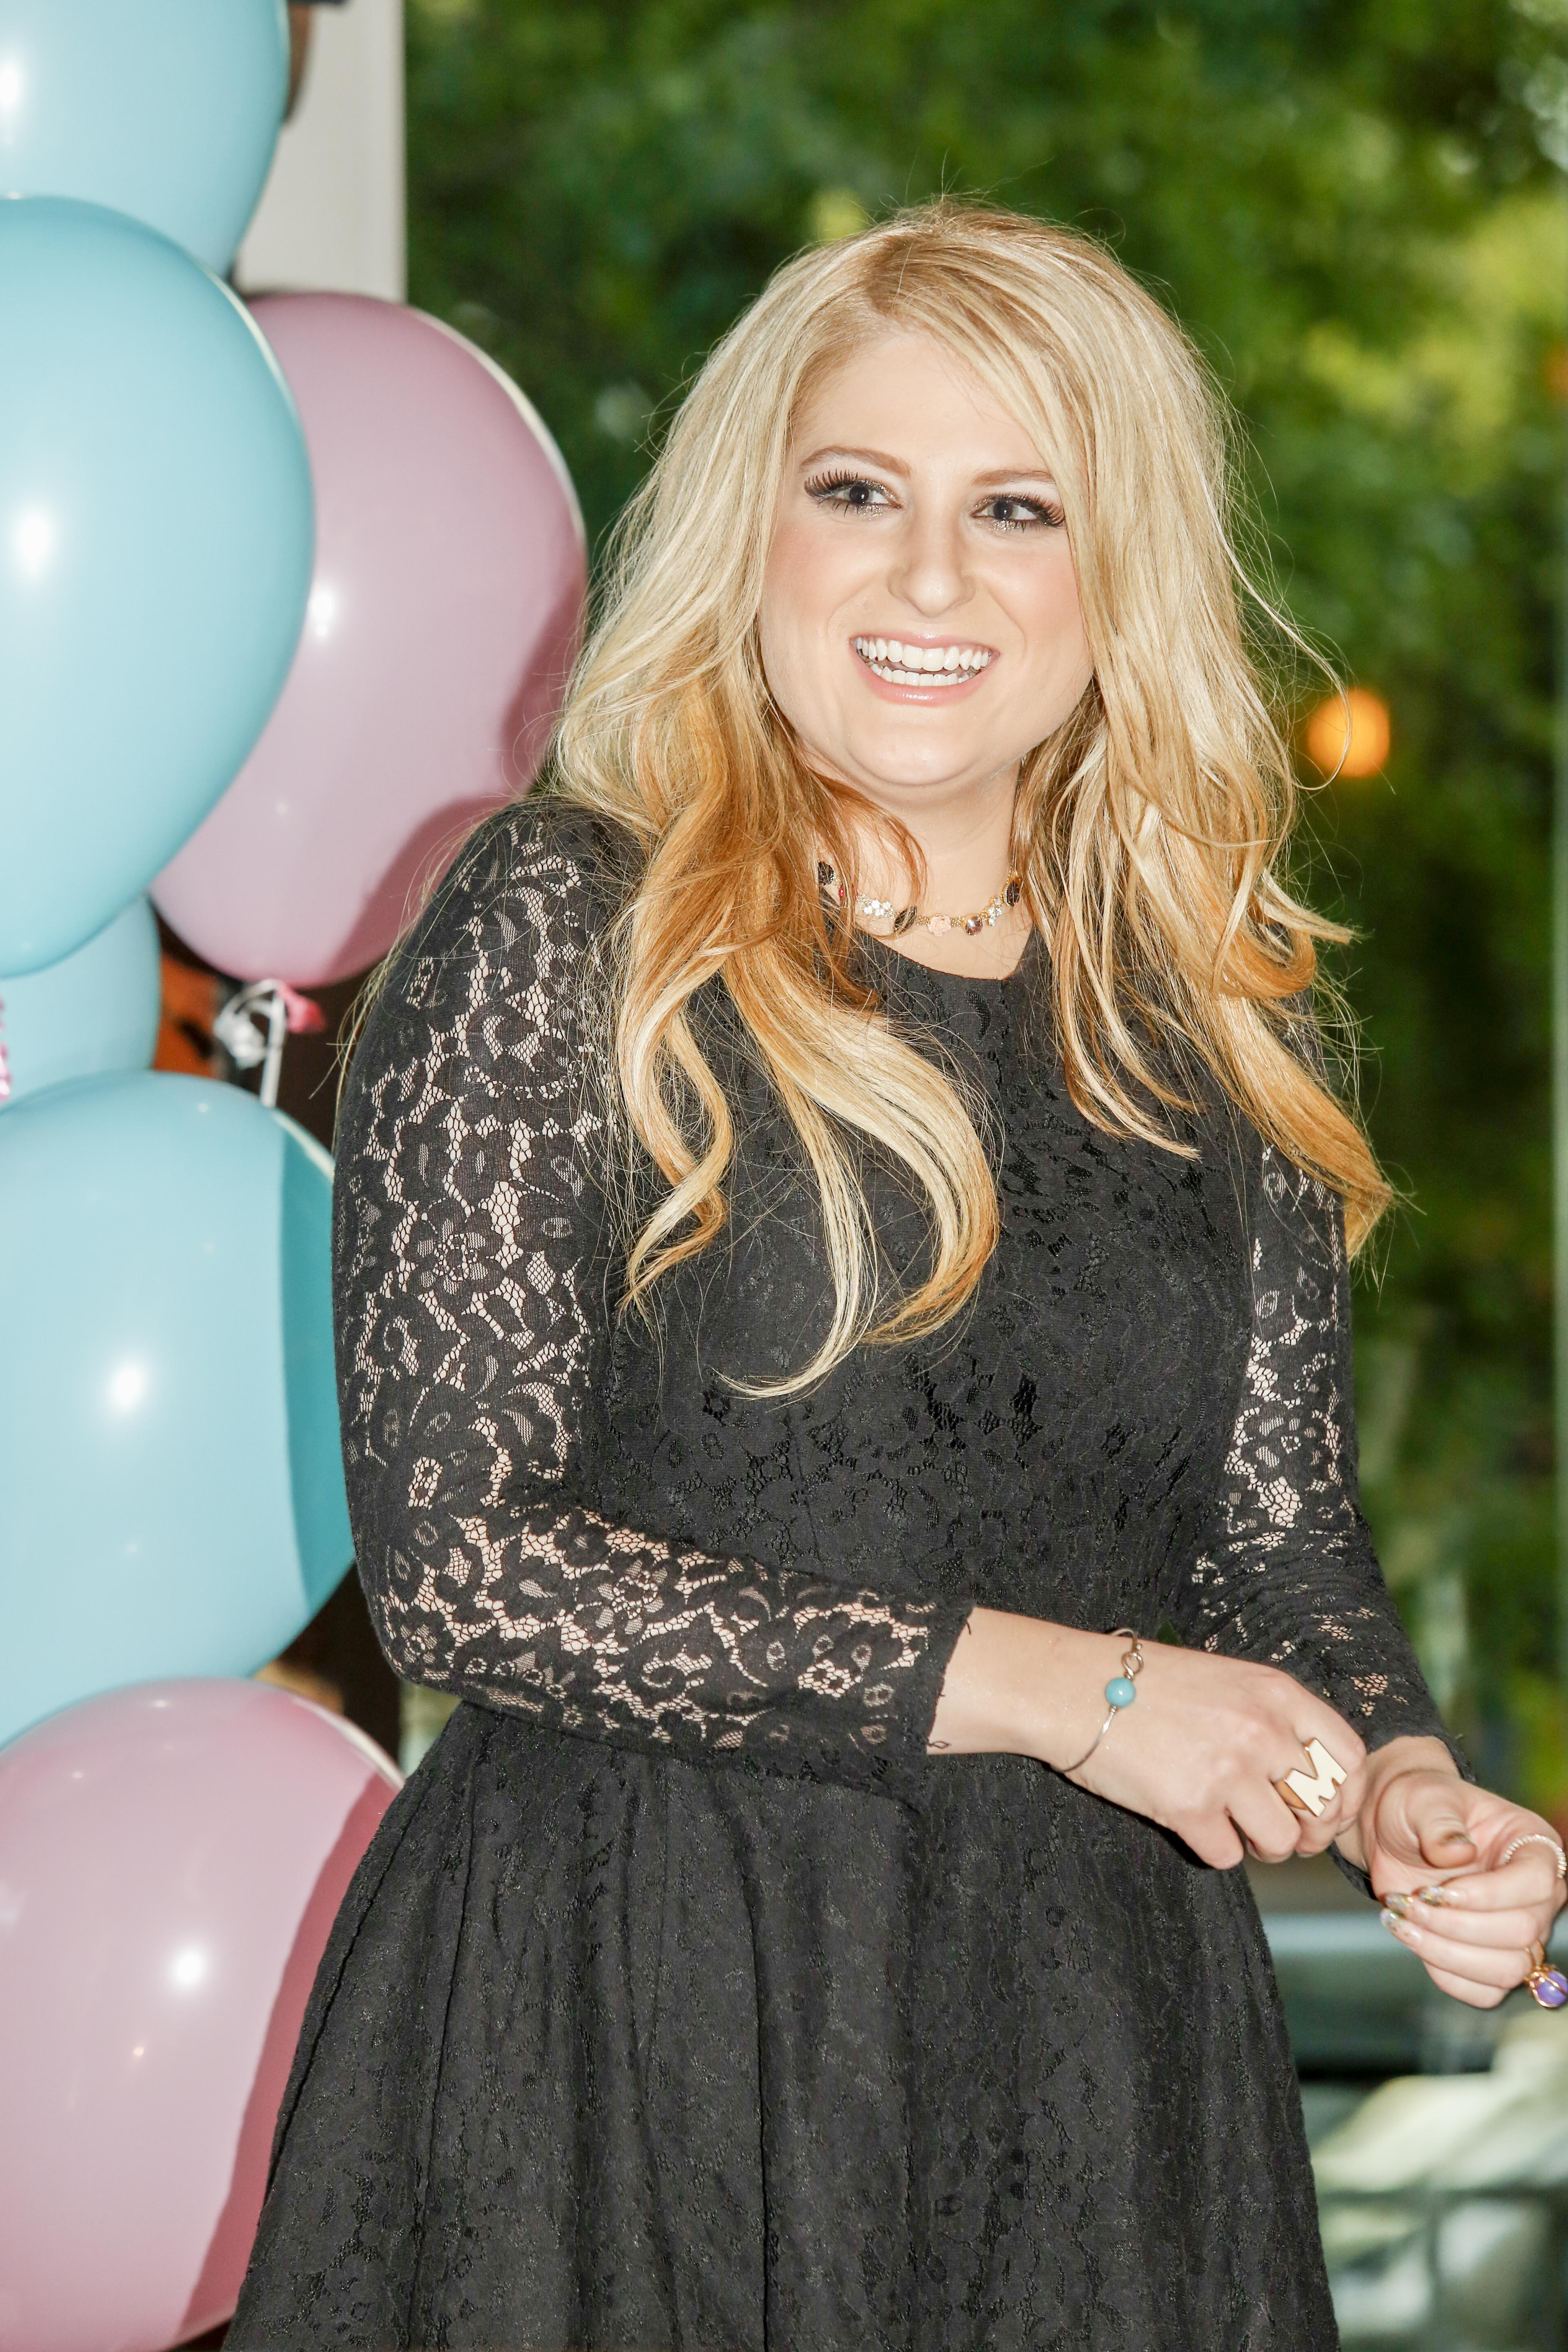 Meghan Trainor attends the  All About That Bass  #1 Party on October 14, 2014 in Nashville, Tennessee.